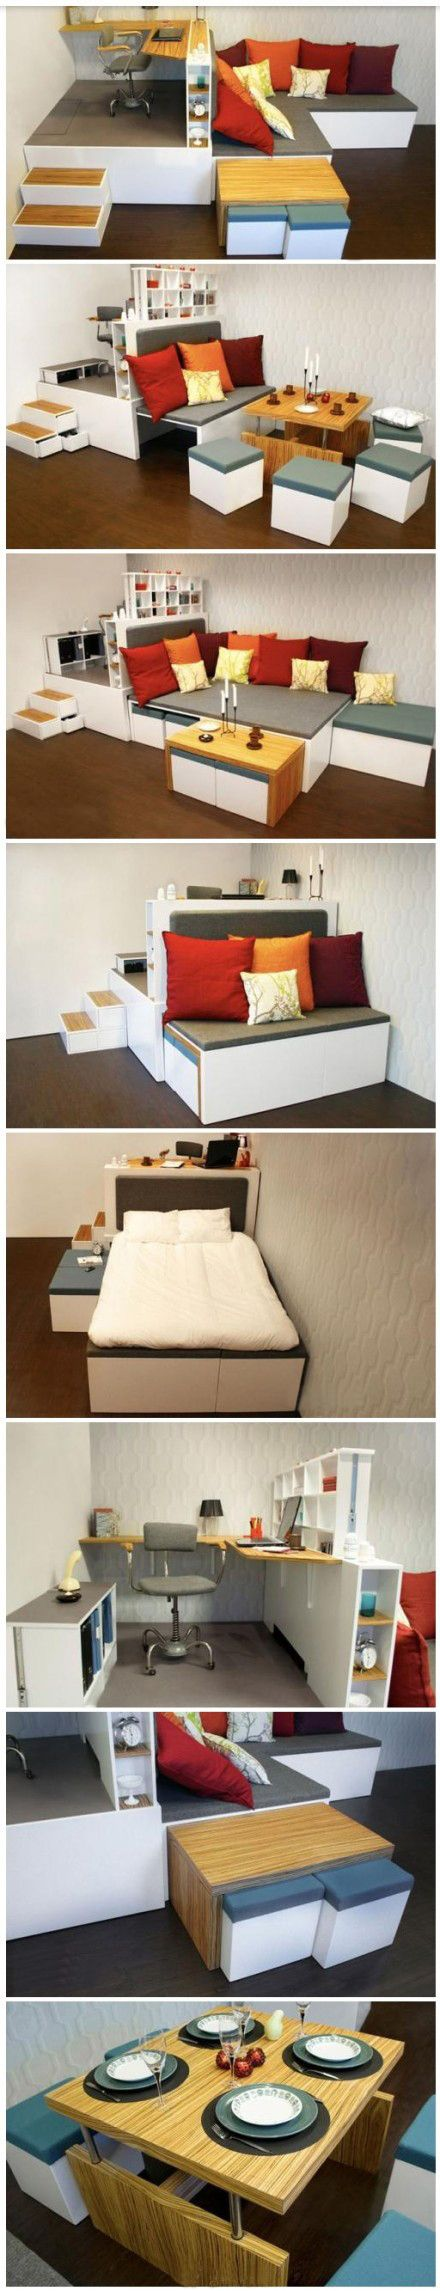 Multifunction Furniture Chairs And Sofa Pinterest